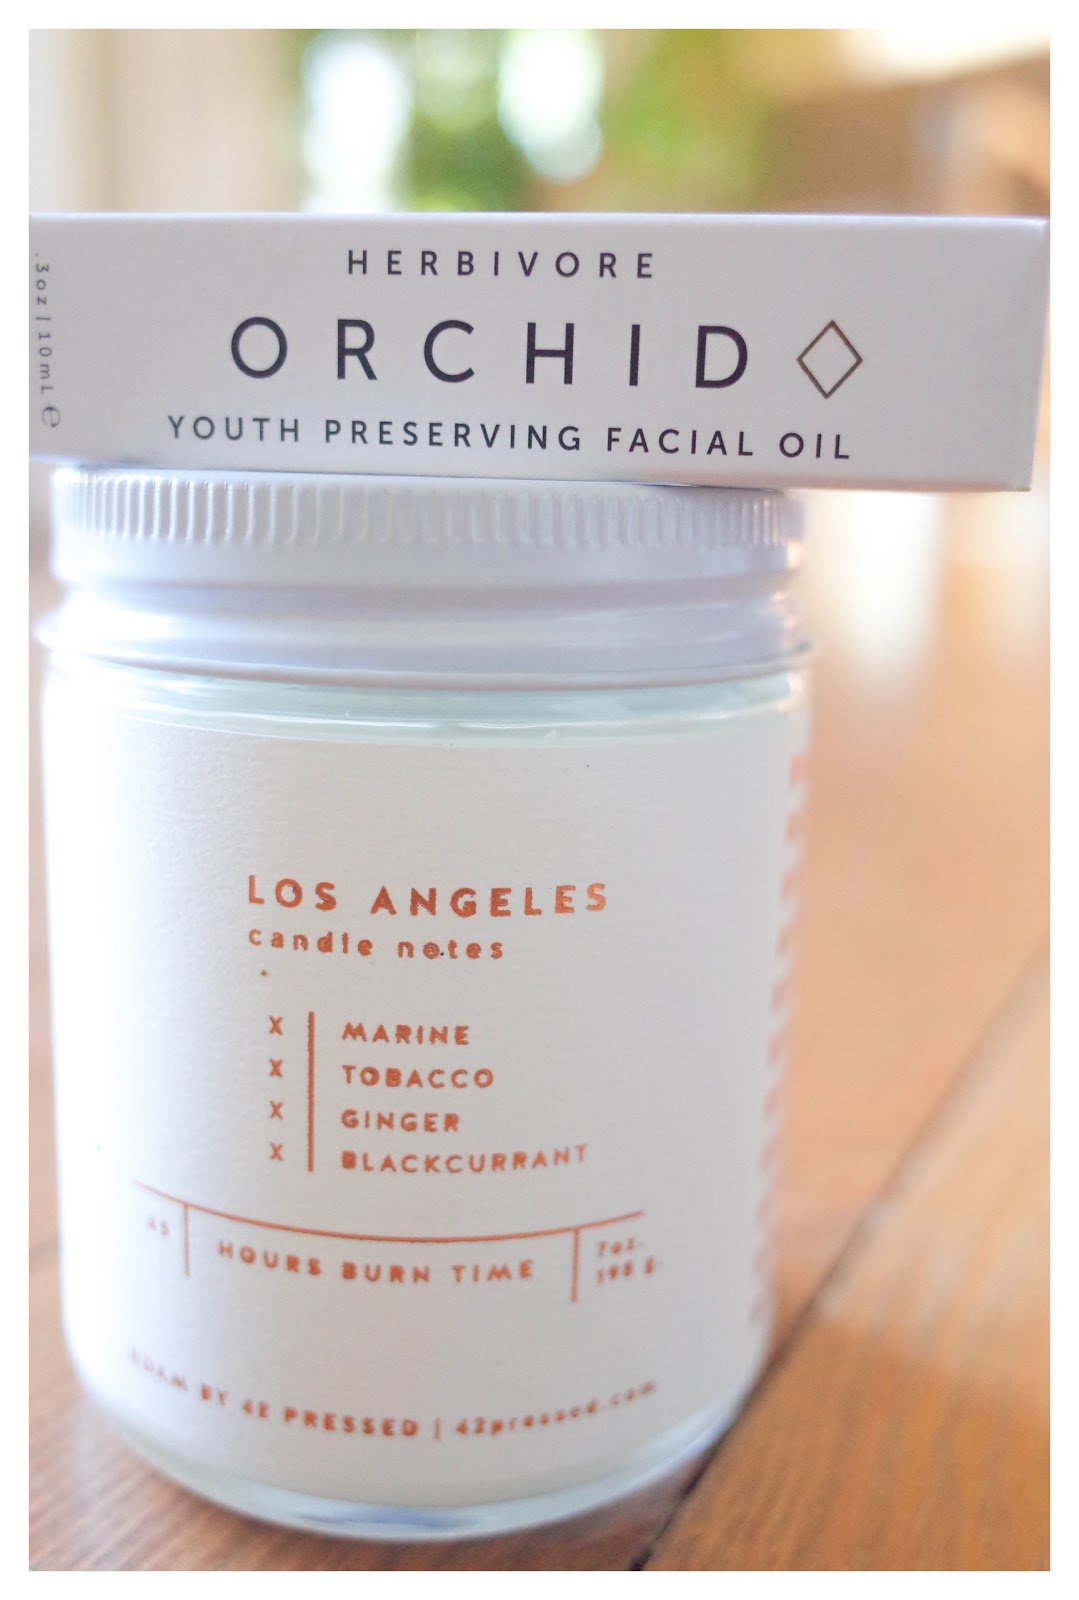 Herbivore Orchid youth preserving facial oil review, best facial oils